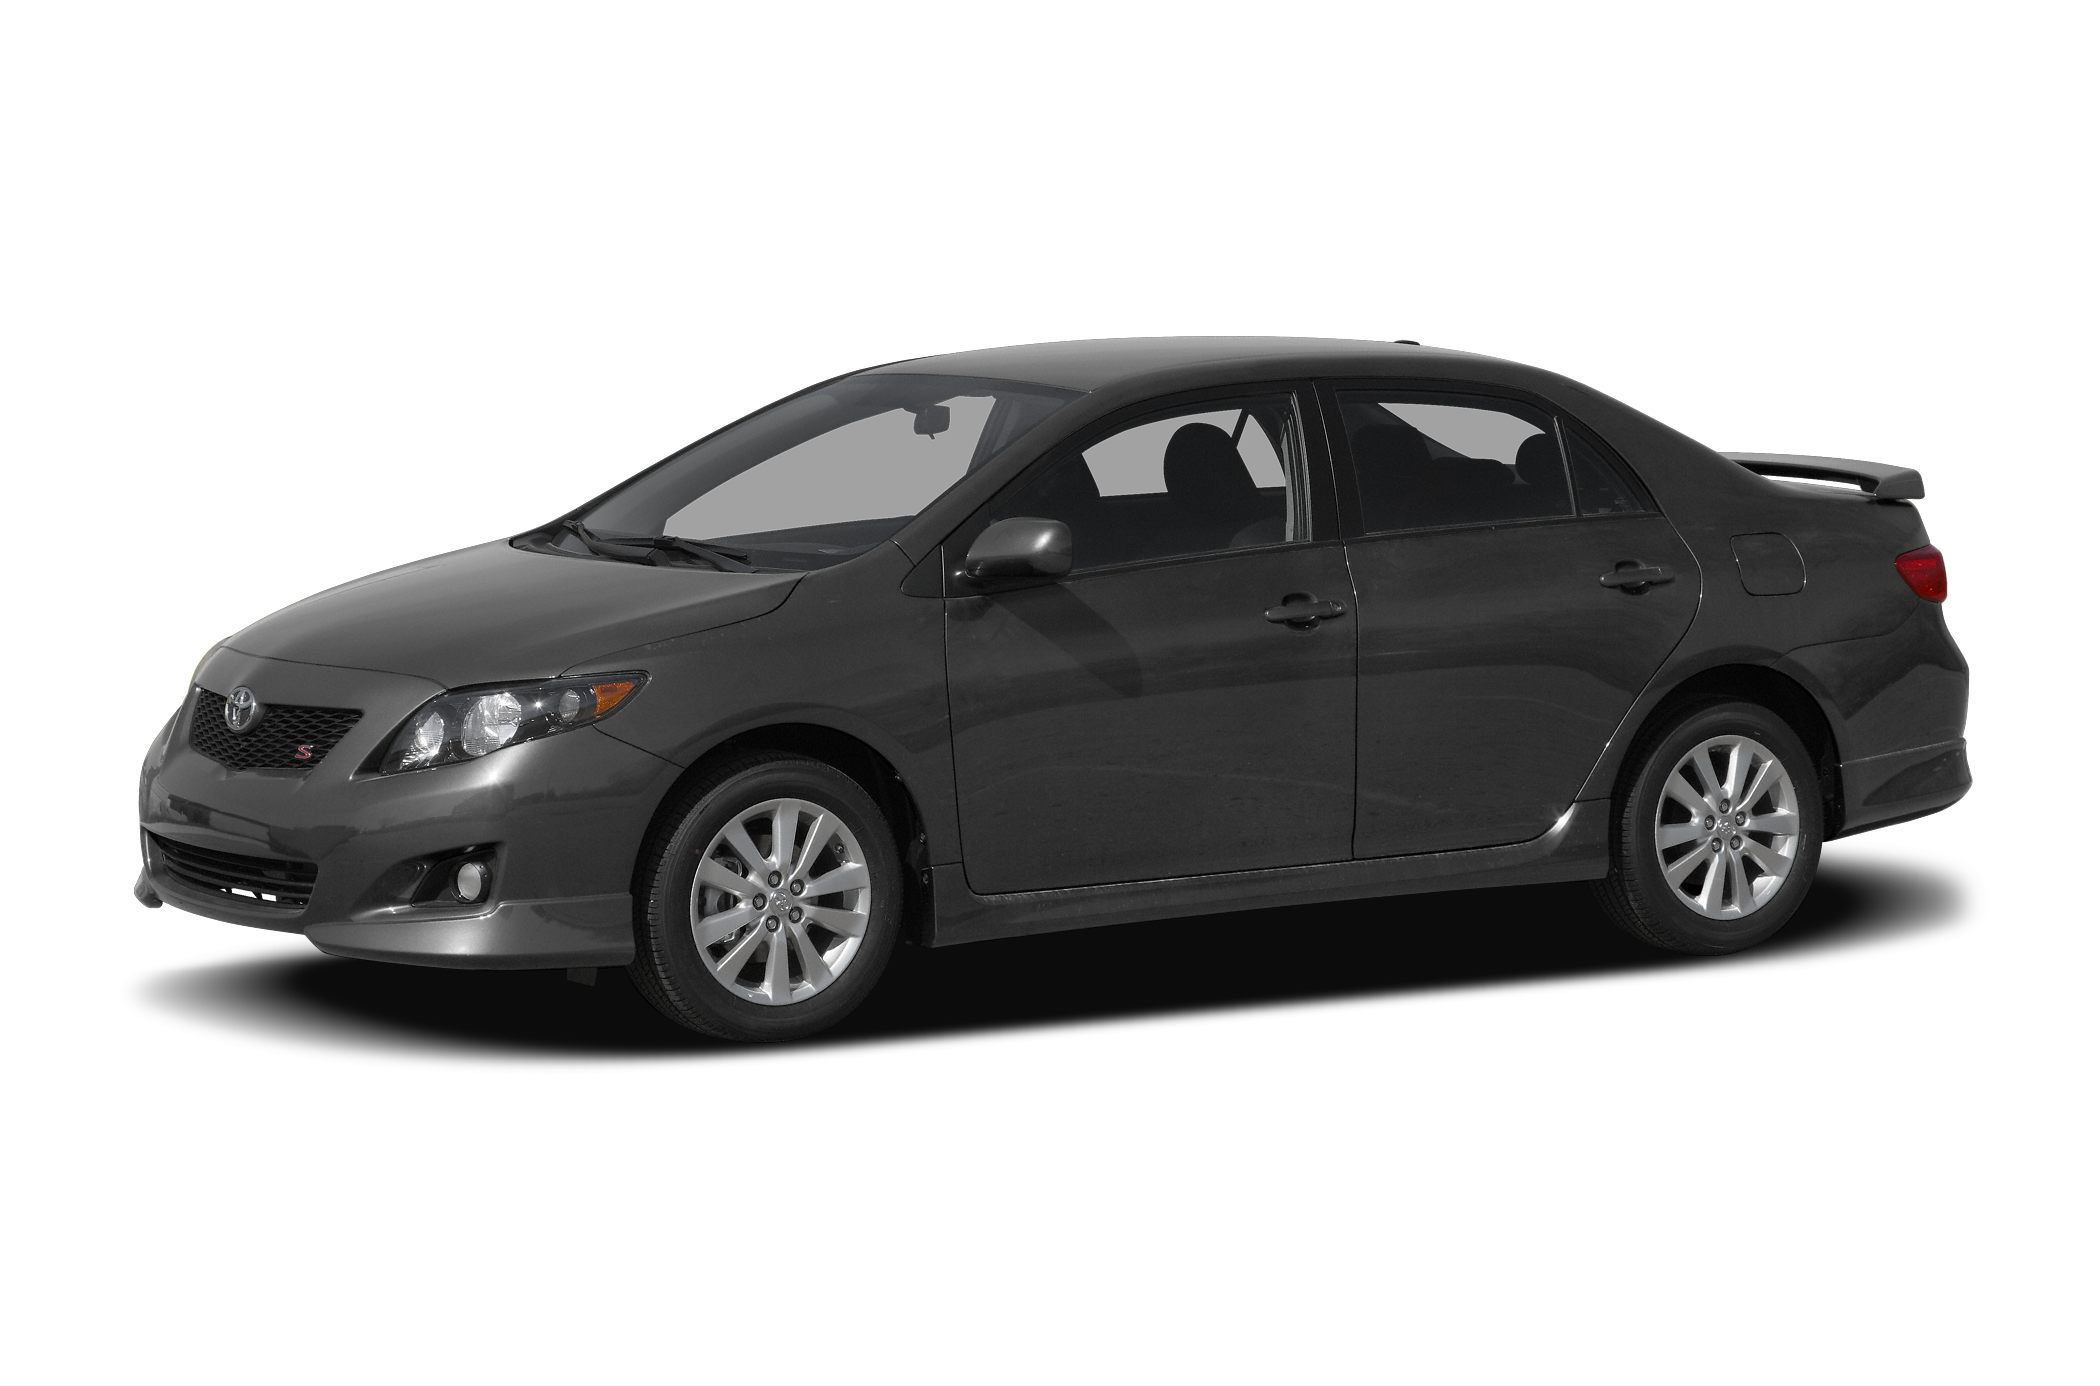 2010 Toyota Corolla S Sedan for sale in Kalispell for $12,990 with 73,854 miles